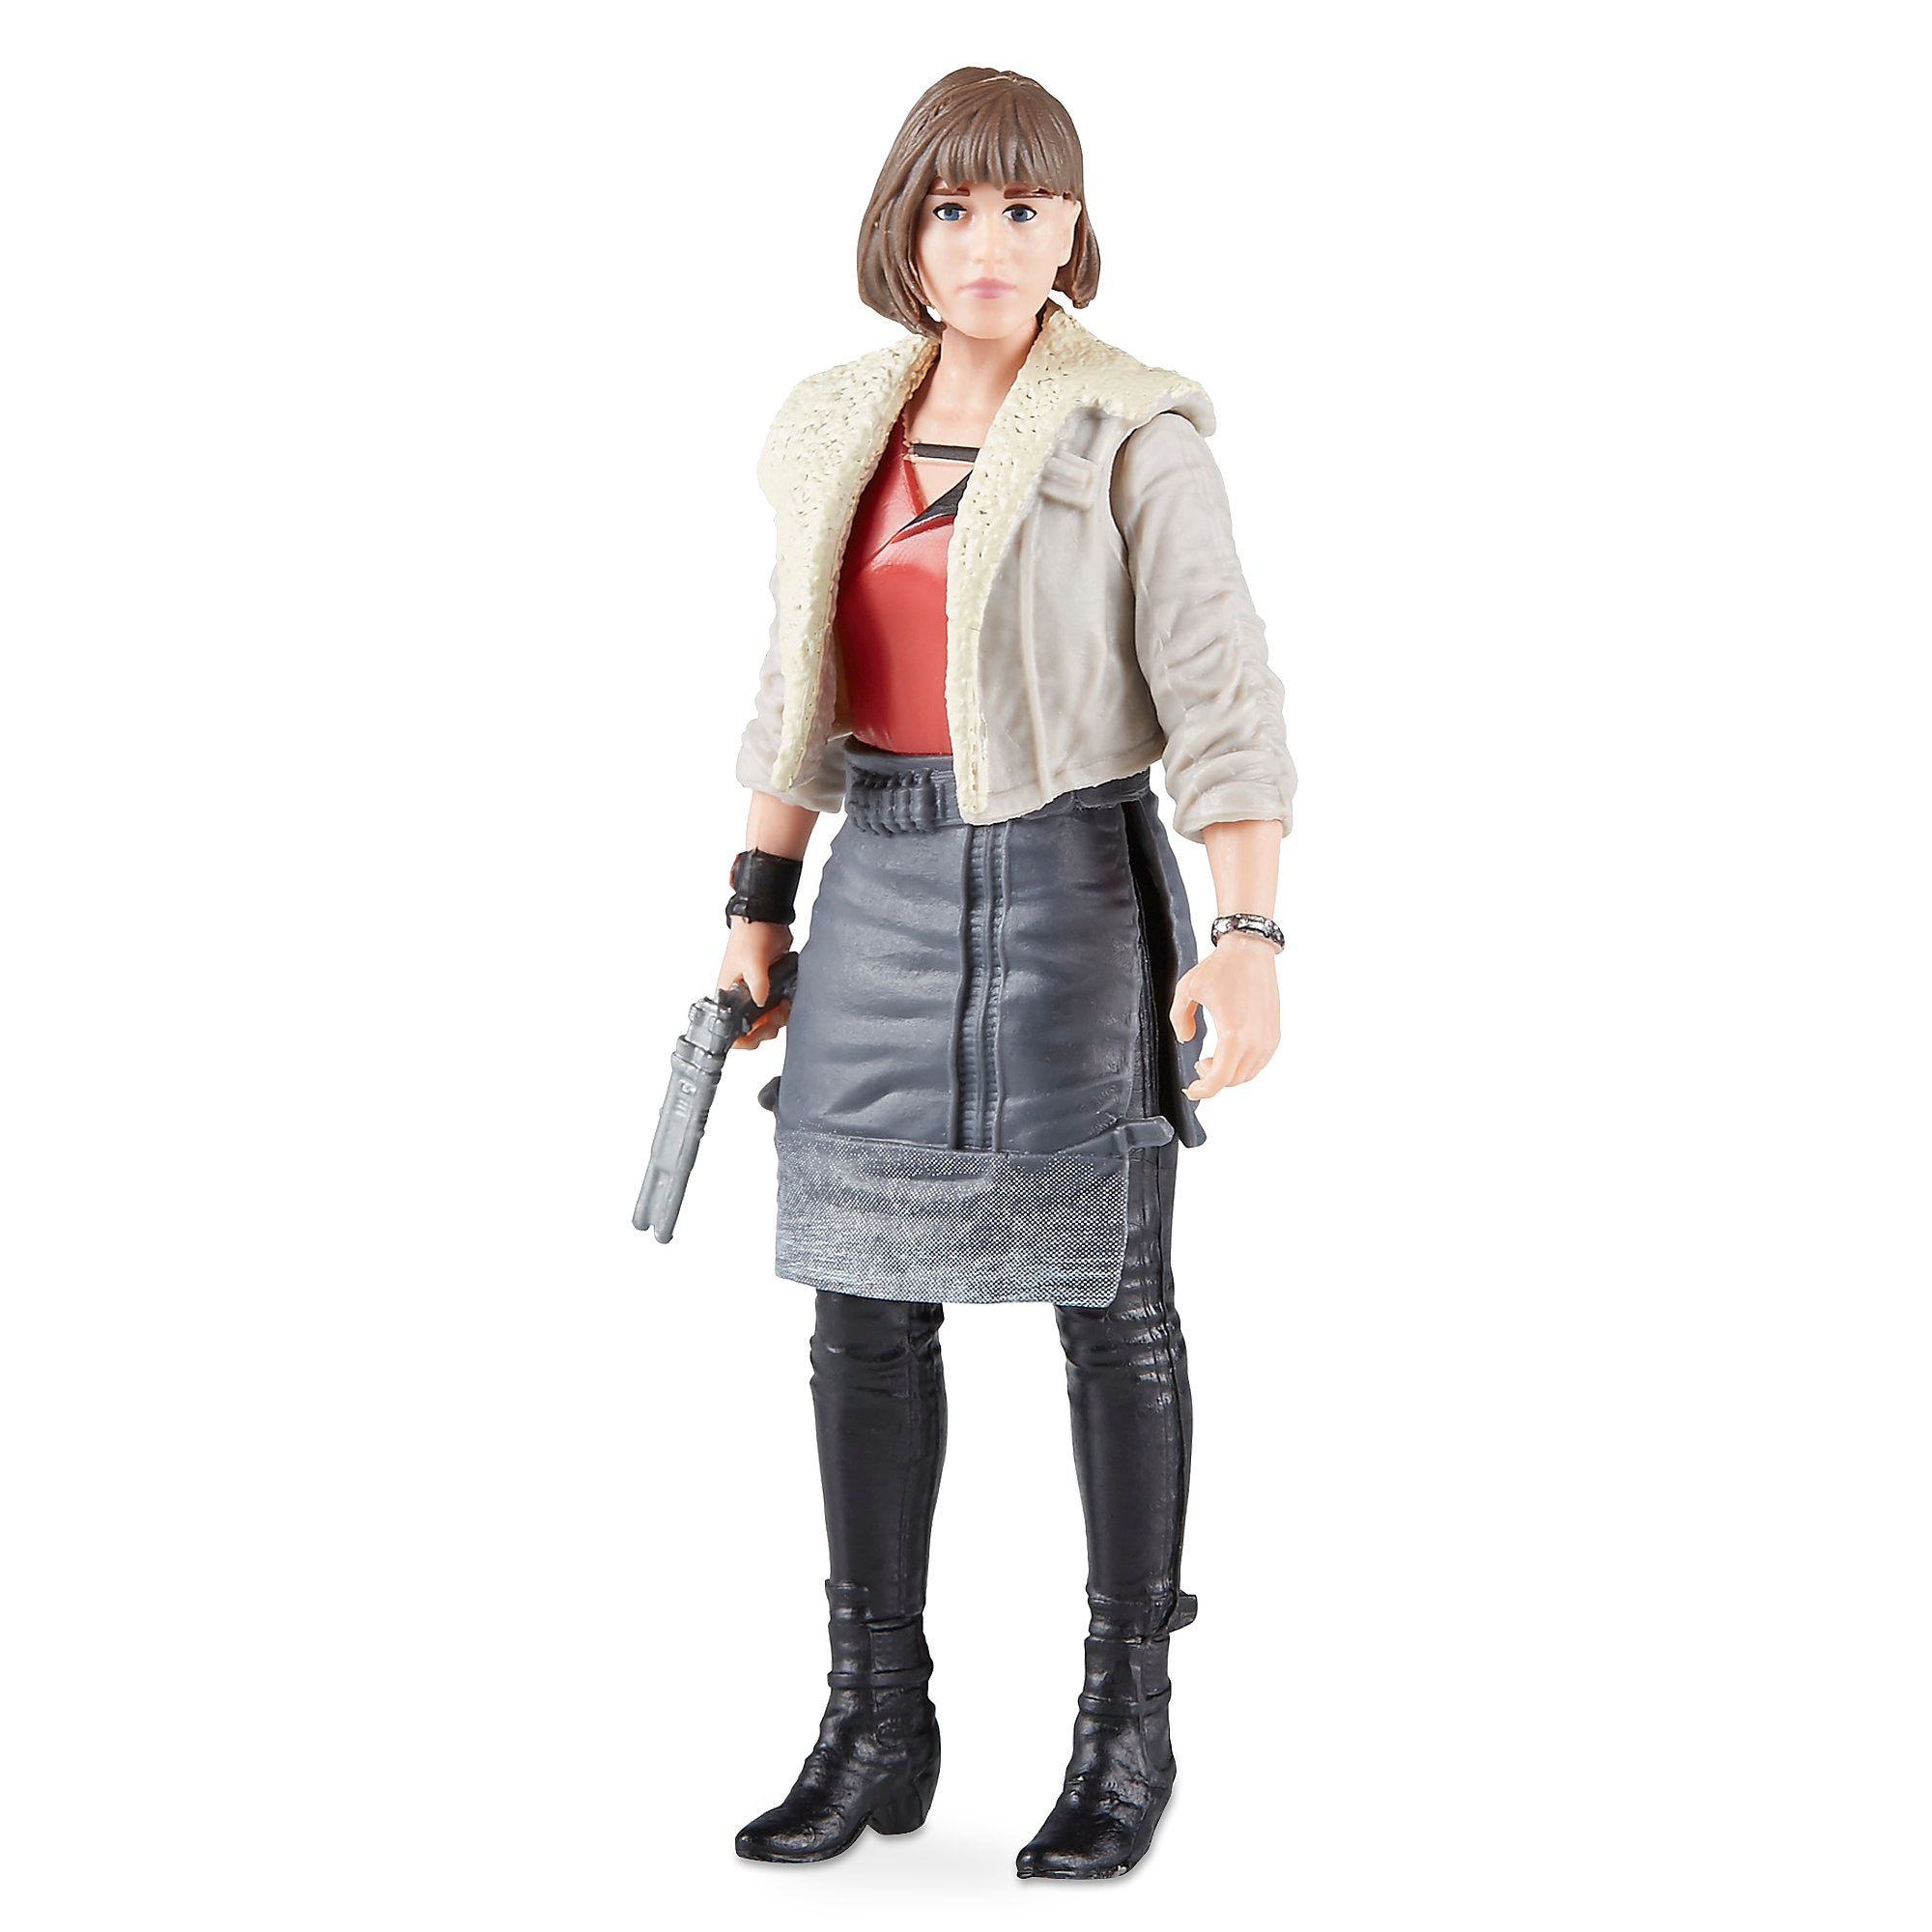 Qi'ra Force Link 2.0 Action Figure by Hasbro - Solo: A Star Wars Story